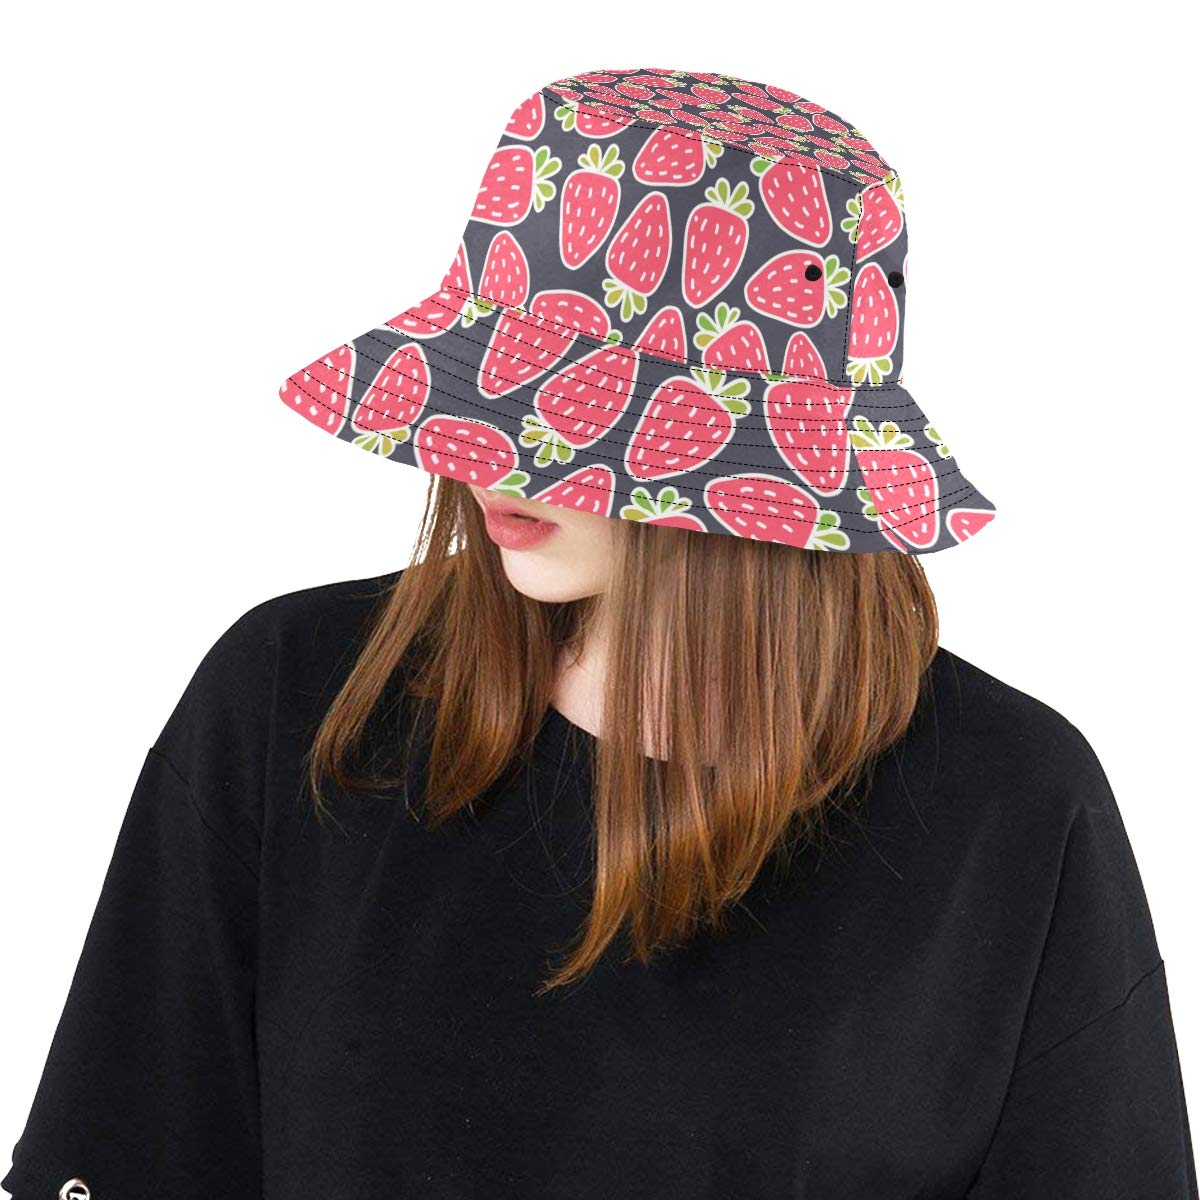 Delicious Fresh Strawberry Pink Decor New Summer Unisex Cotton Fashion Fishing Sun Bucket Hats for Kid Teens Women and Men with Customize Top Packable Fisherman Cap for Outdoor Travel